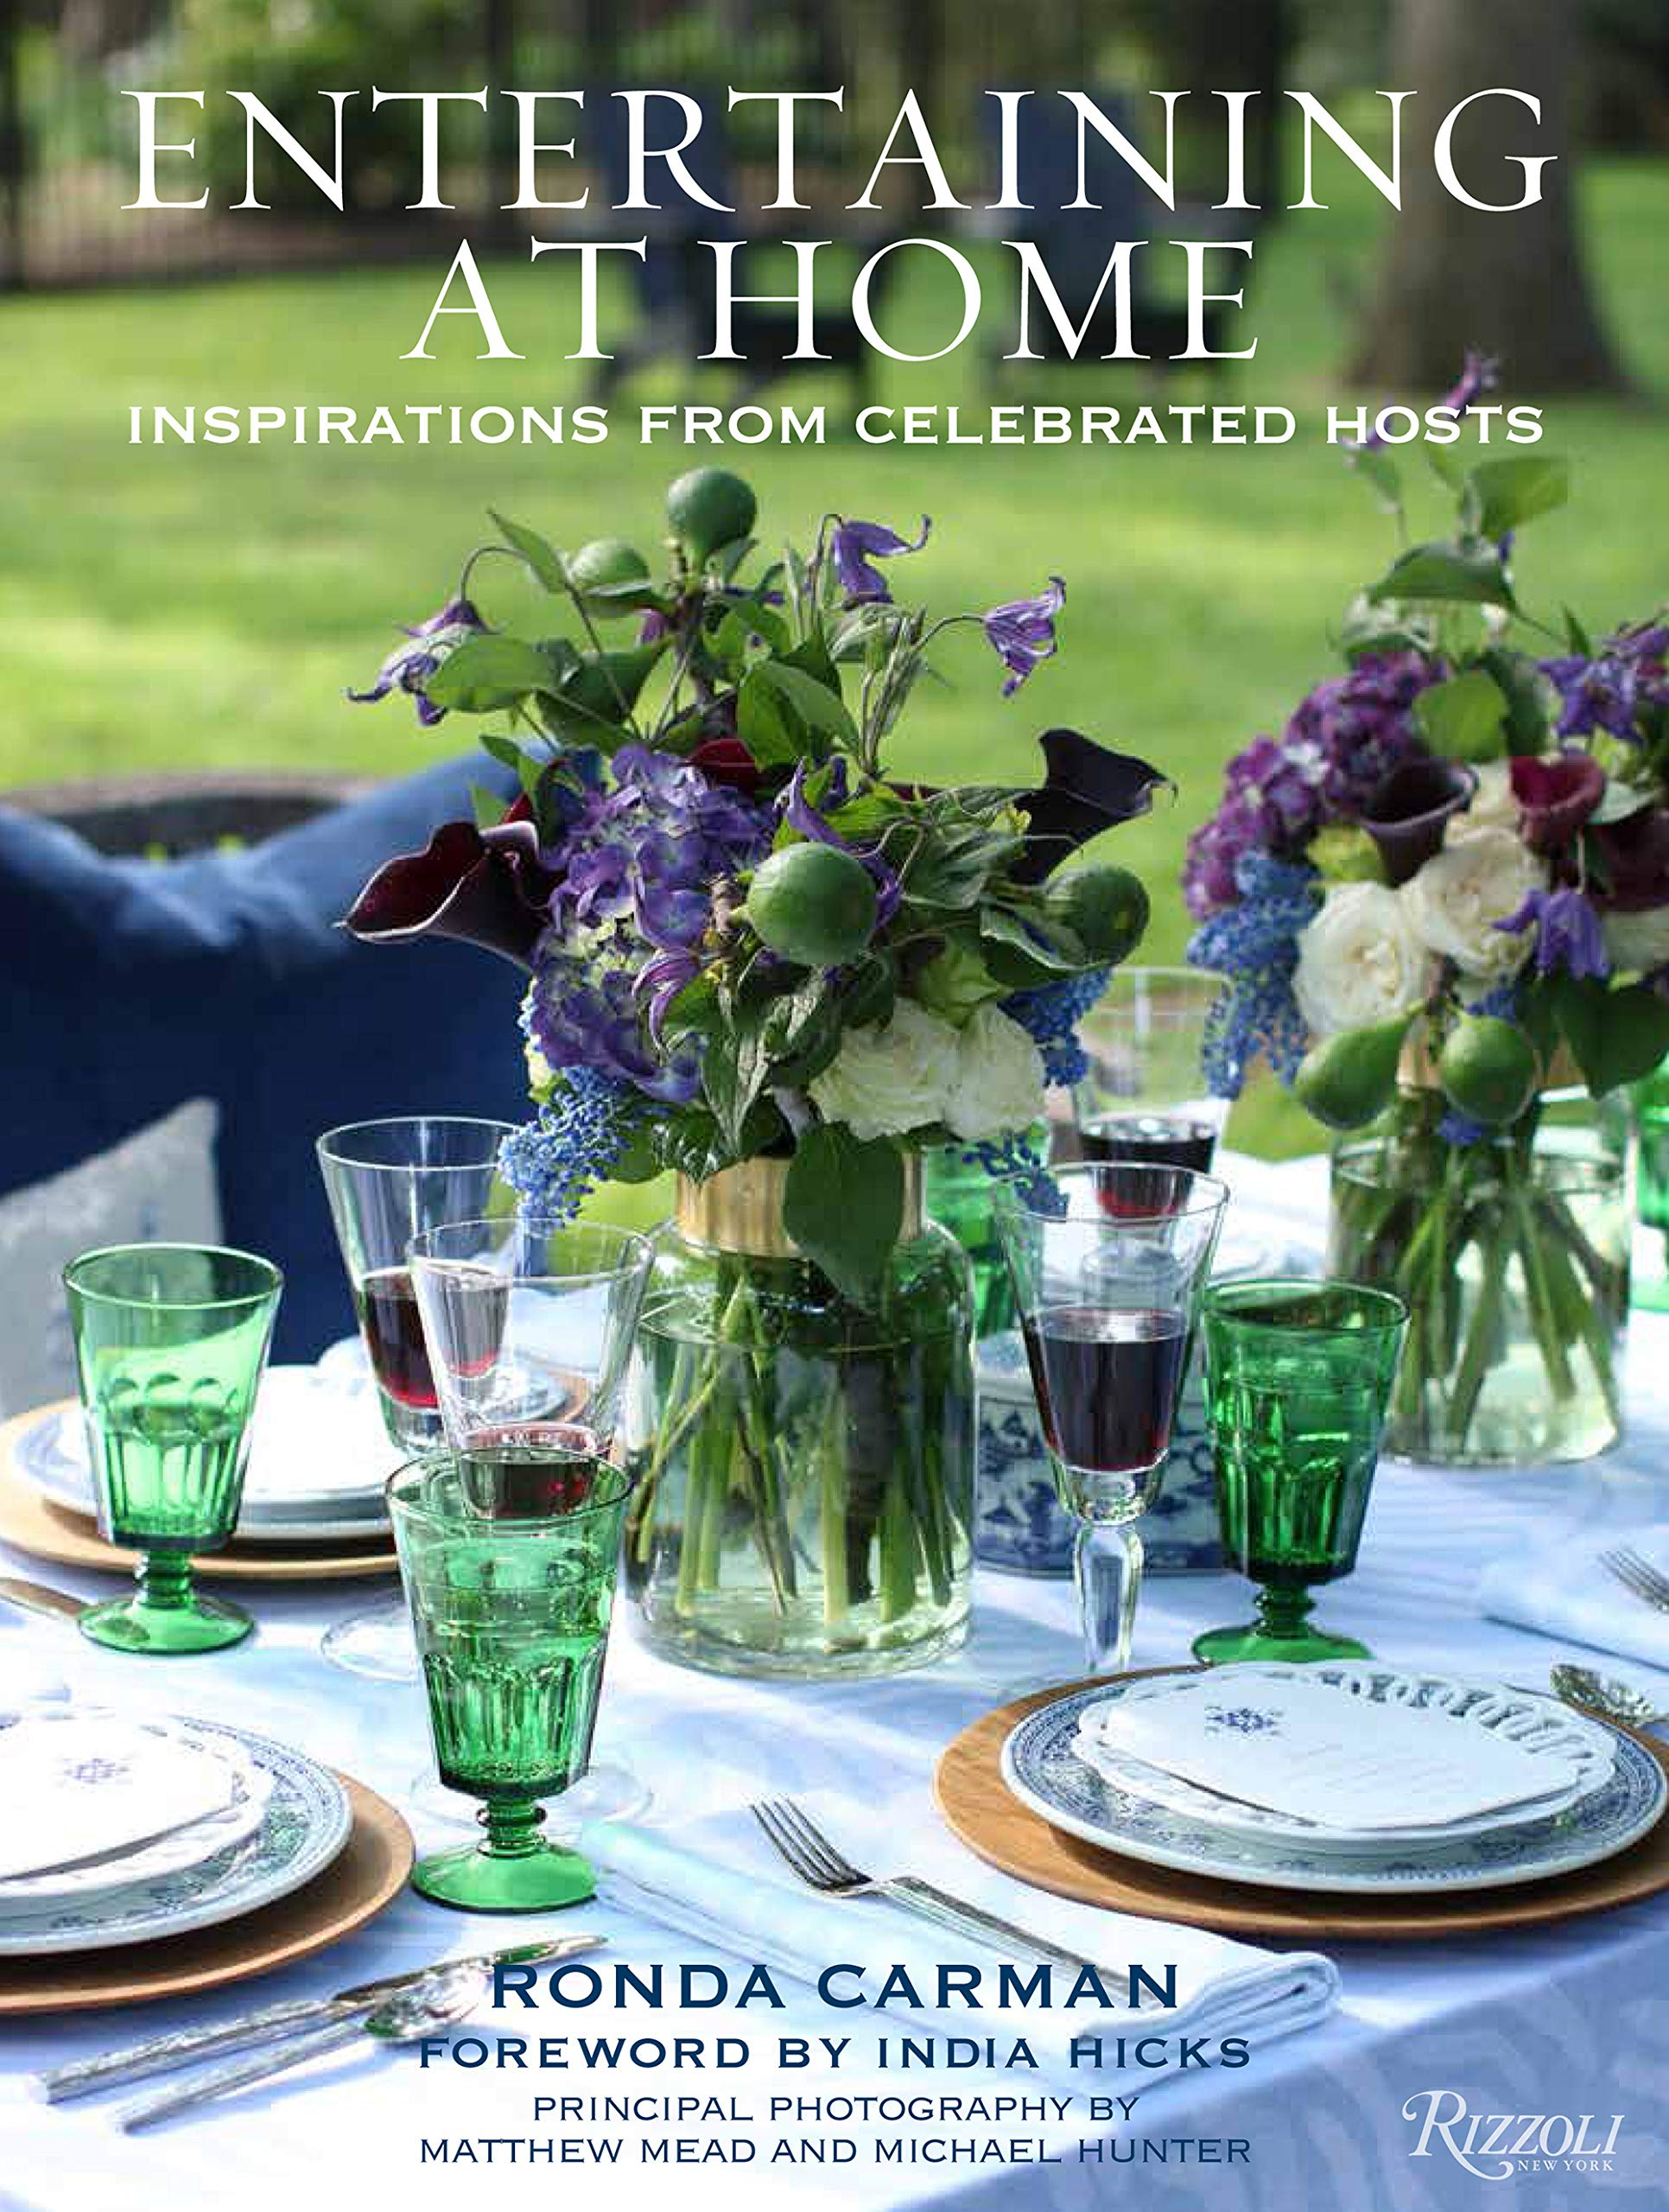 Entertaining at Home: Inspirations from Celebrated Hosts by Rizzoli